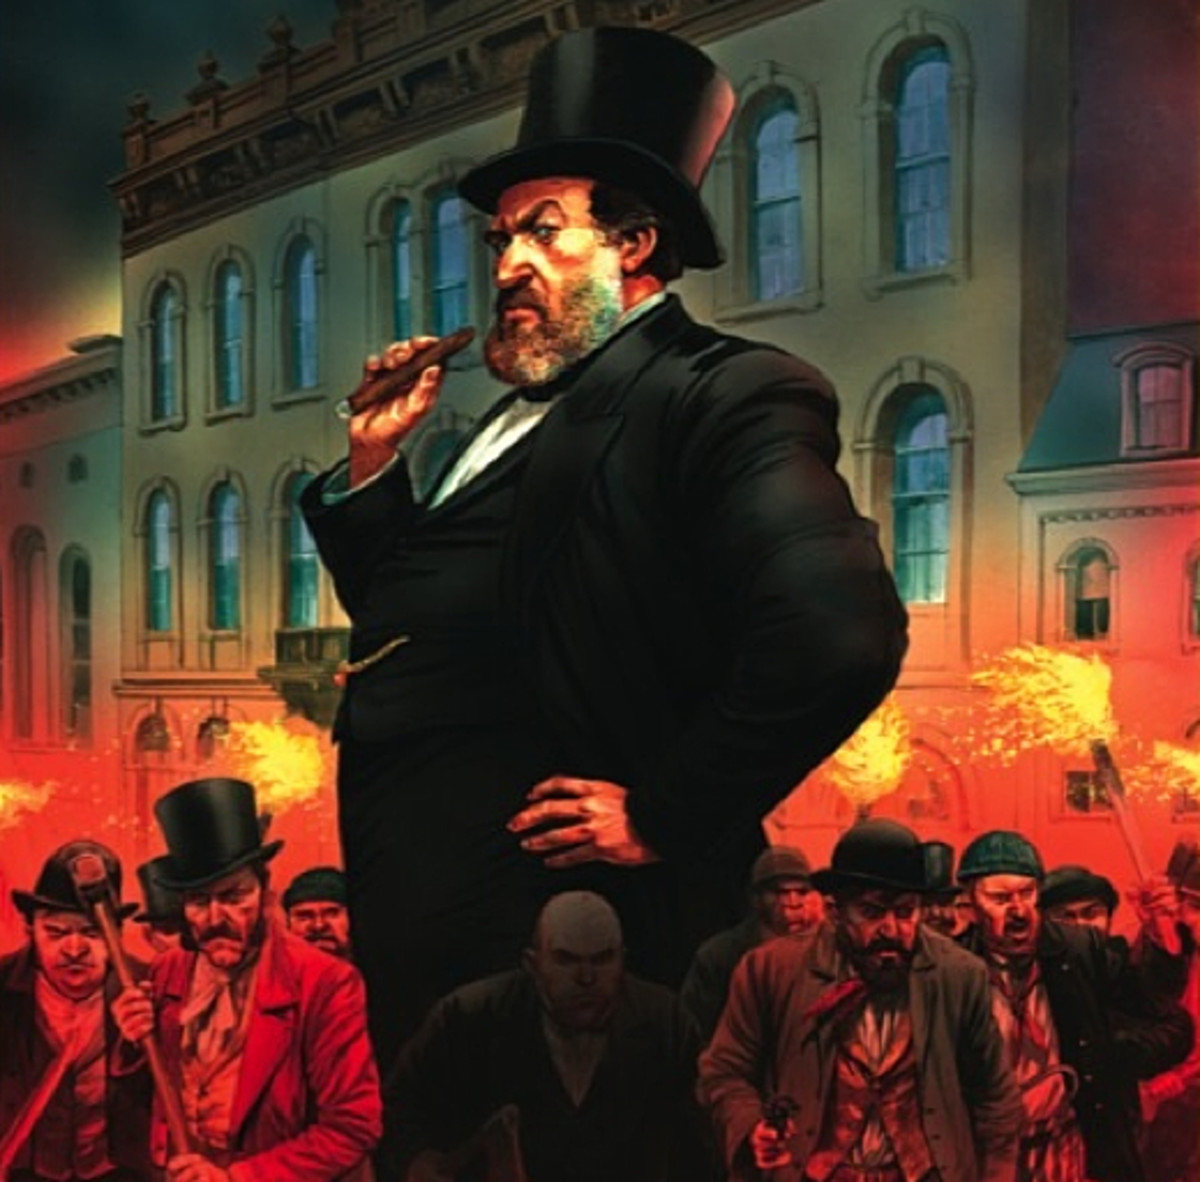 Mayor Hizzone -  New York's Tammany Hall, the home of the Democratic Party political machine that played a major role in the politics of 19th century New York City. Mayoral politics... what could possibly go wrong? Tasked with reviewing proposals to